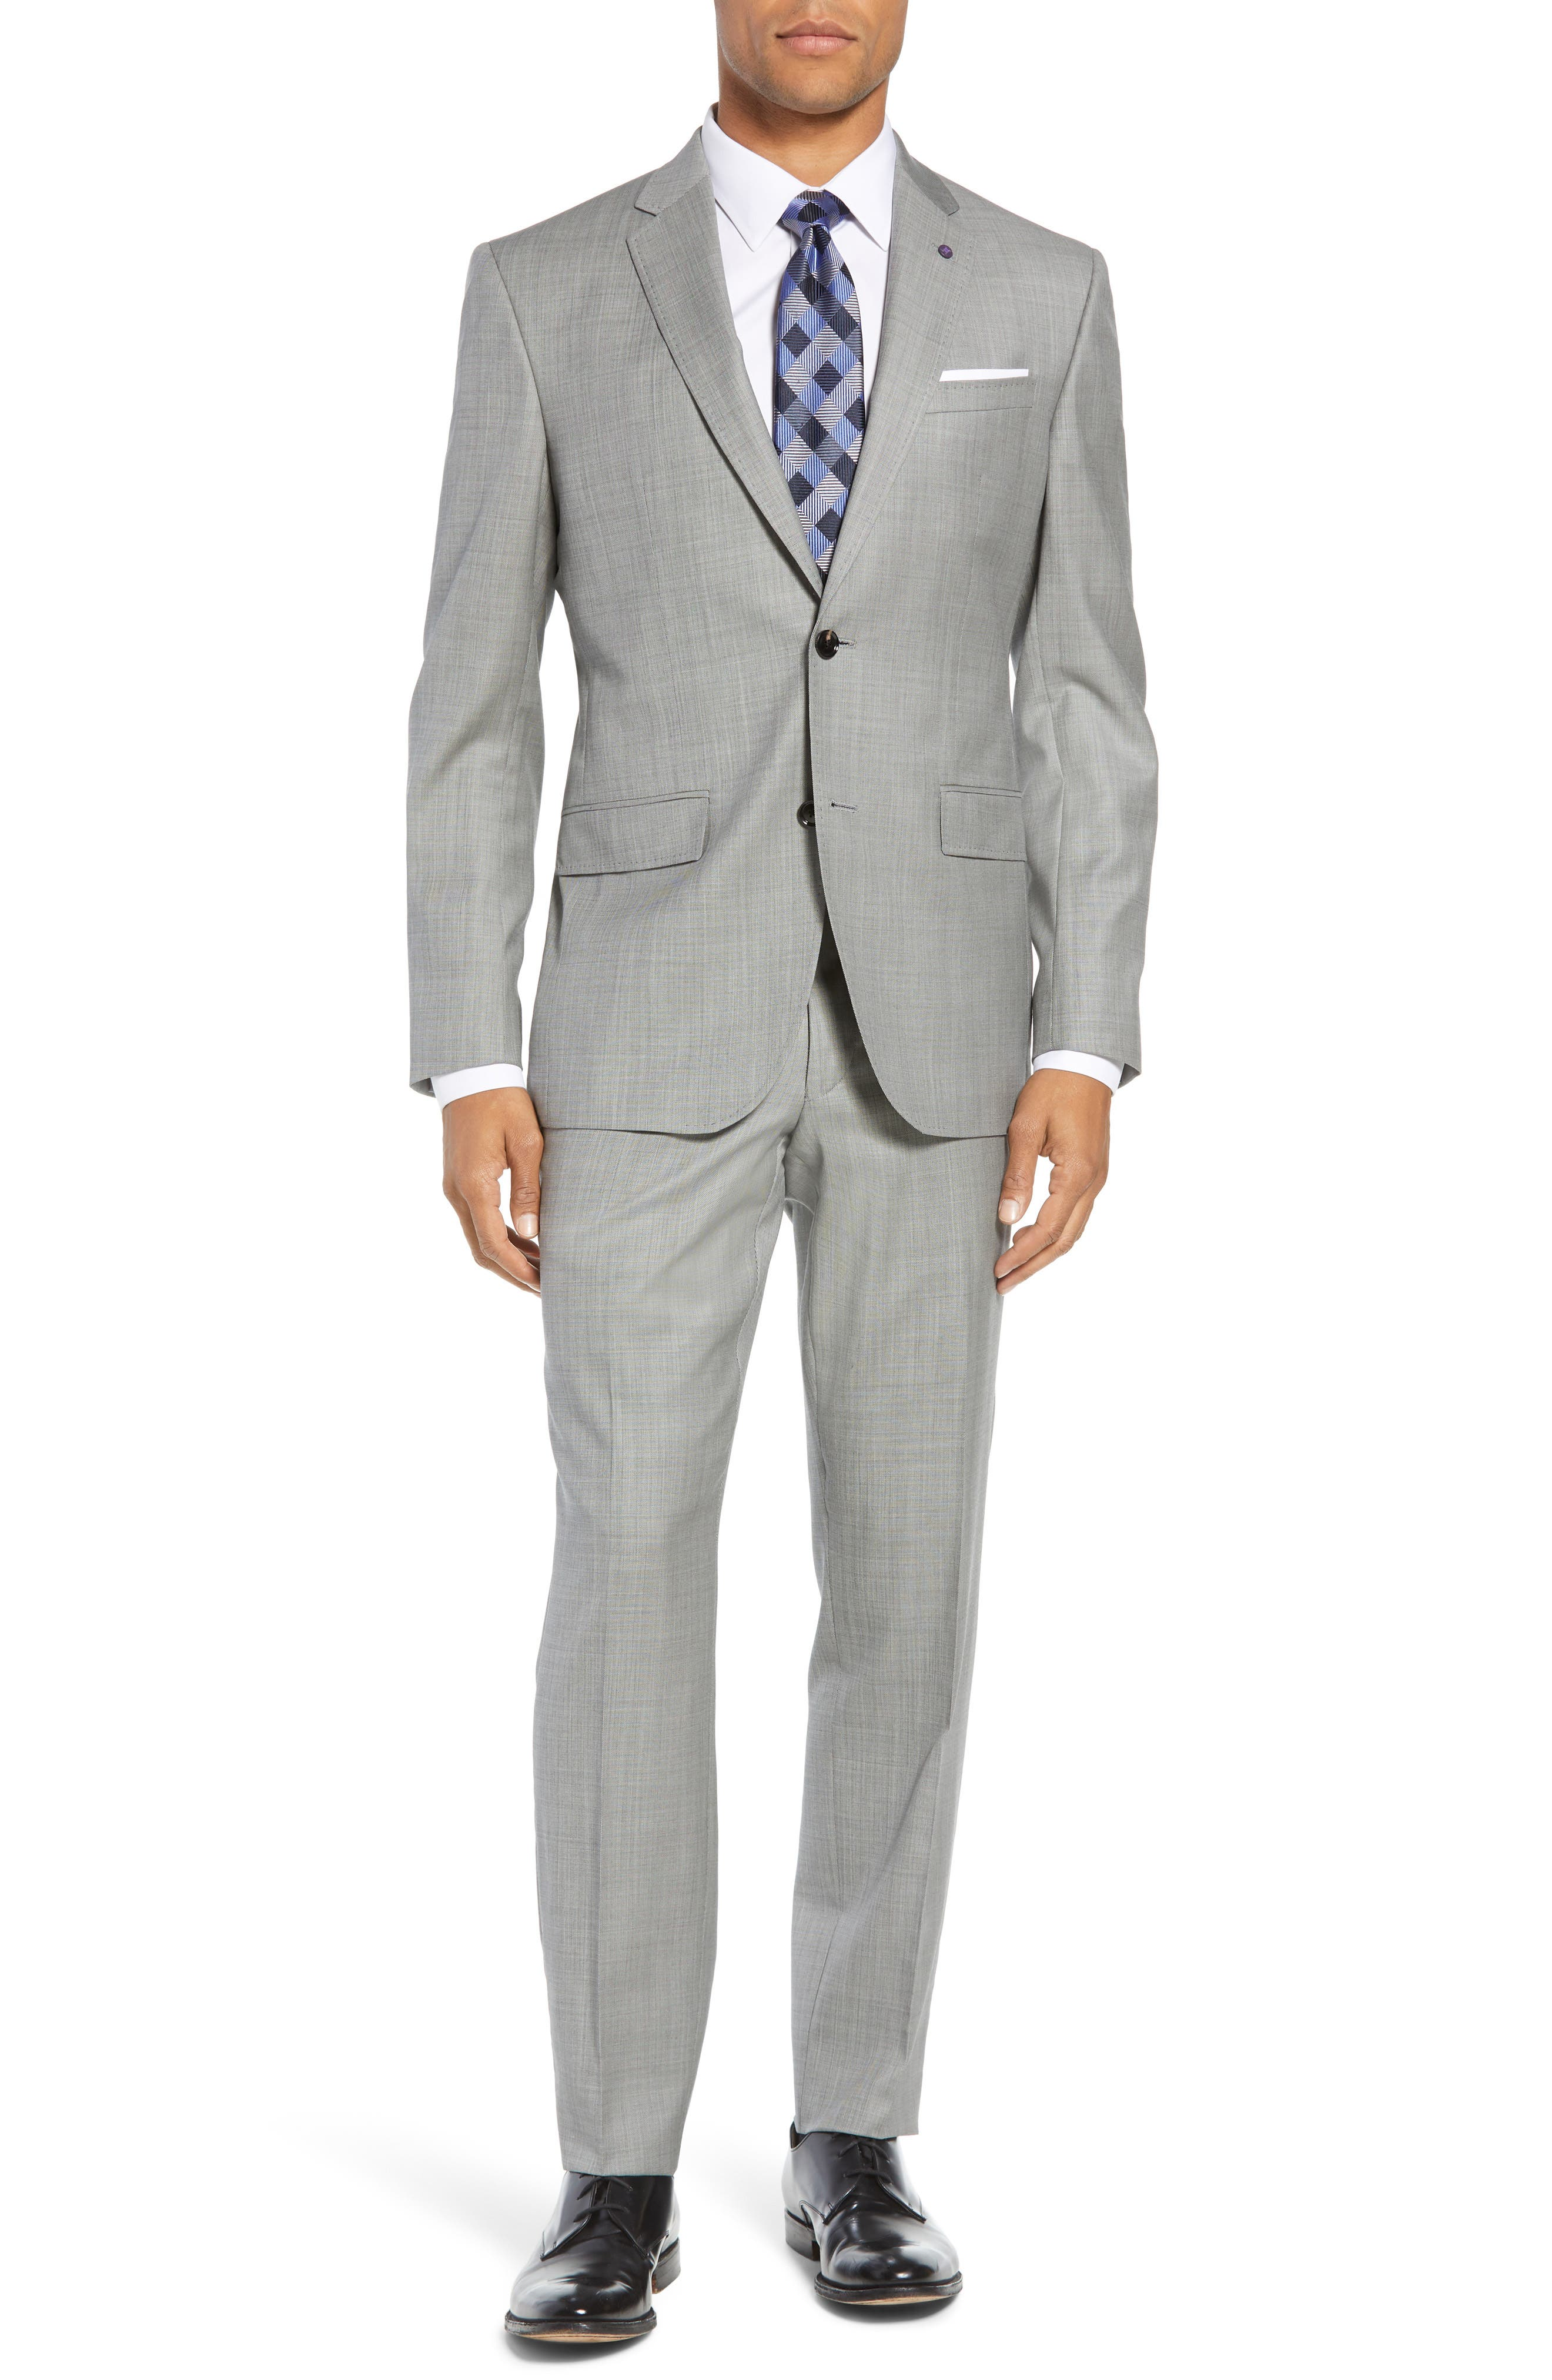 TED BAKER LONDON, Jay Trim Fit Solid Wool Suit, Main thumbnail 1, color, LIGHT GREY